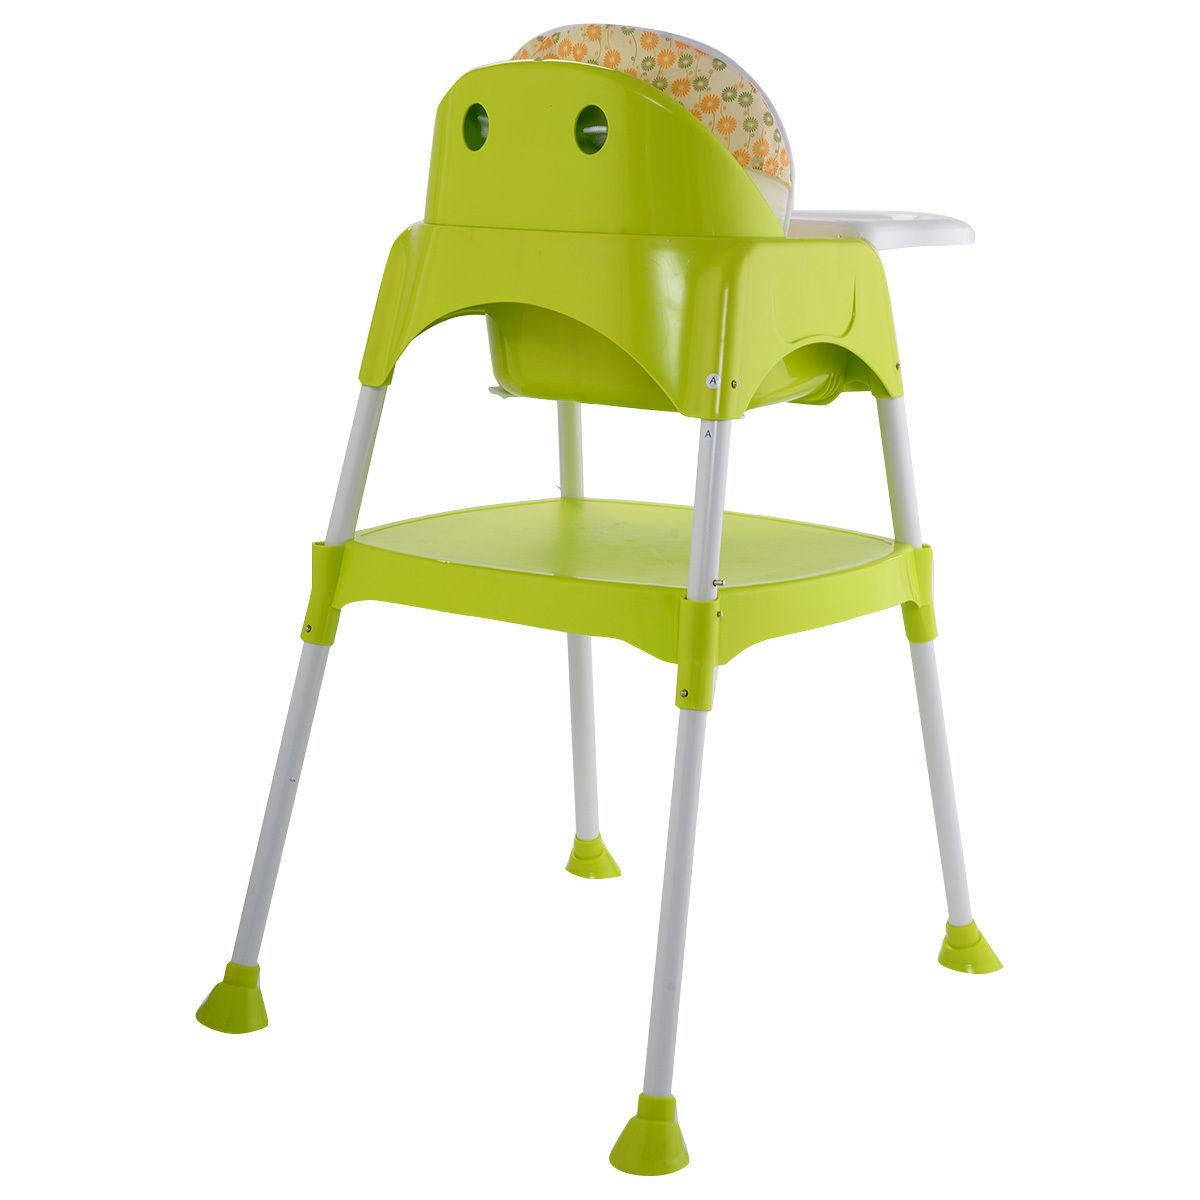 green 3 in 1 baby high chair